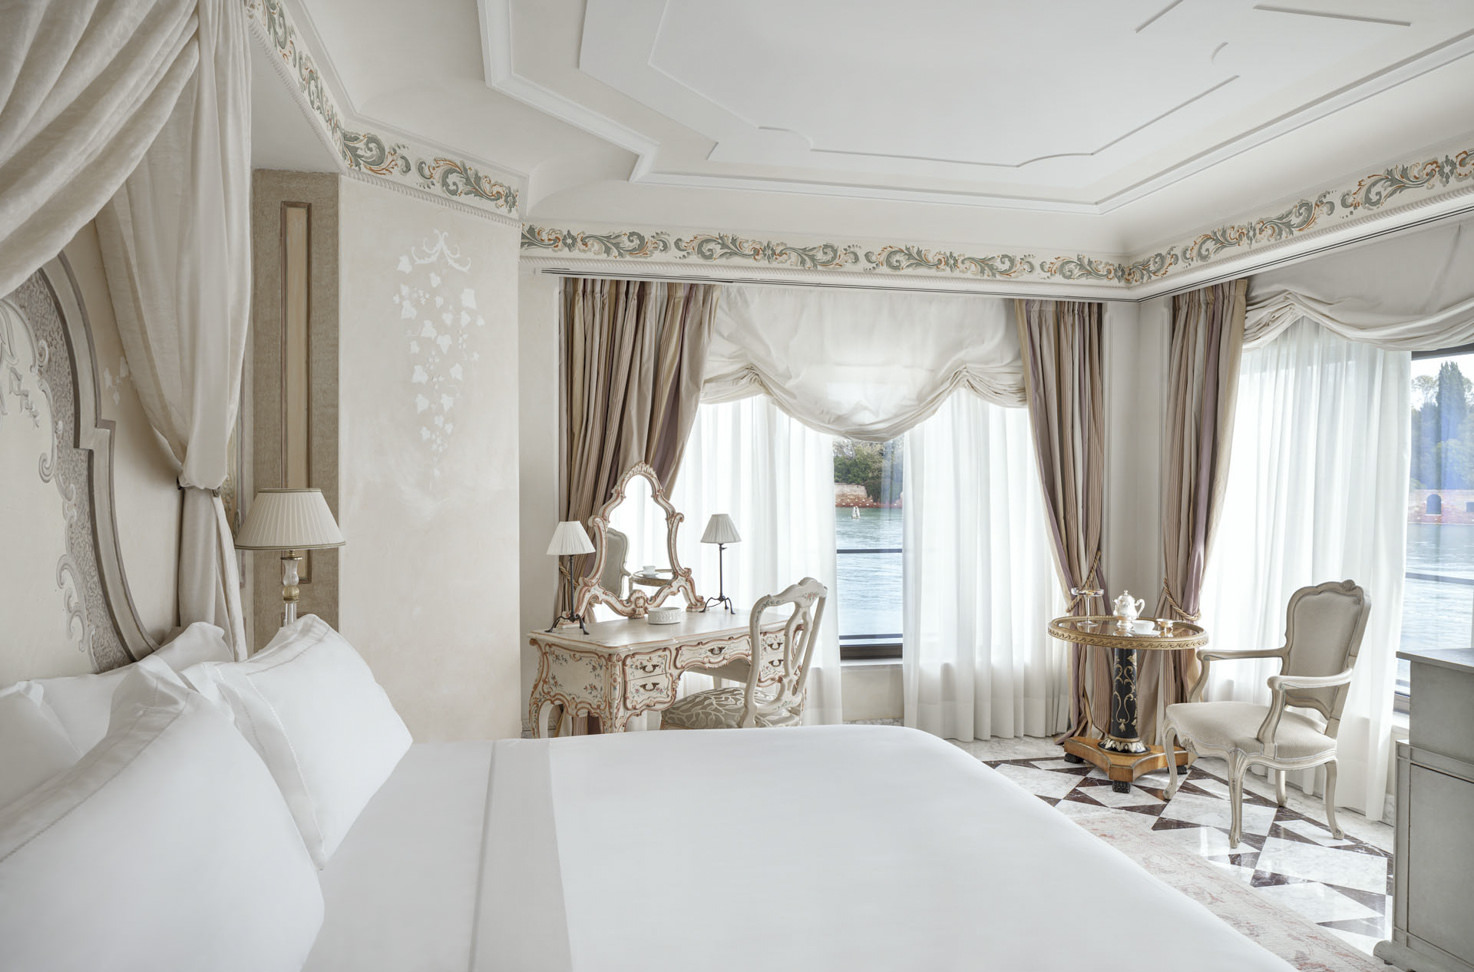 Deluxe suite at Belmond Hotel Cipriani